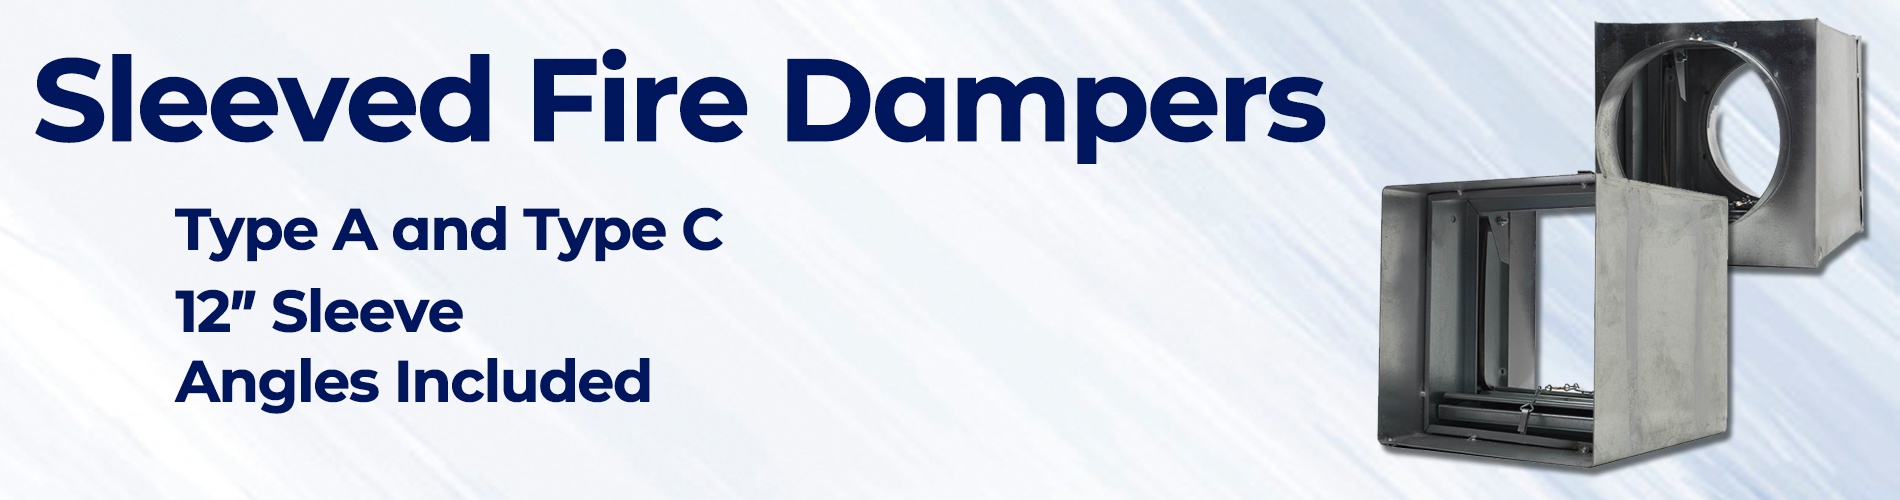 Sleeved Fire Dampers